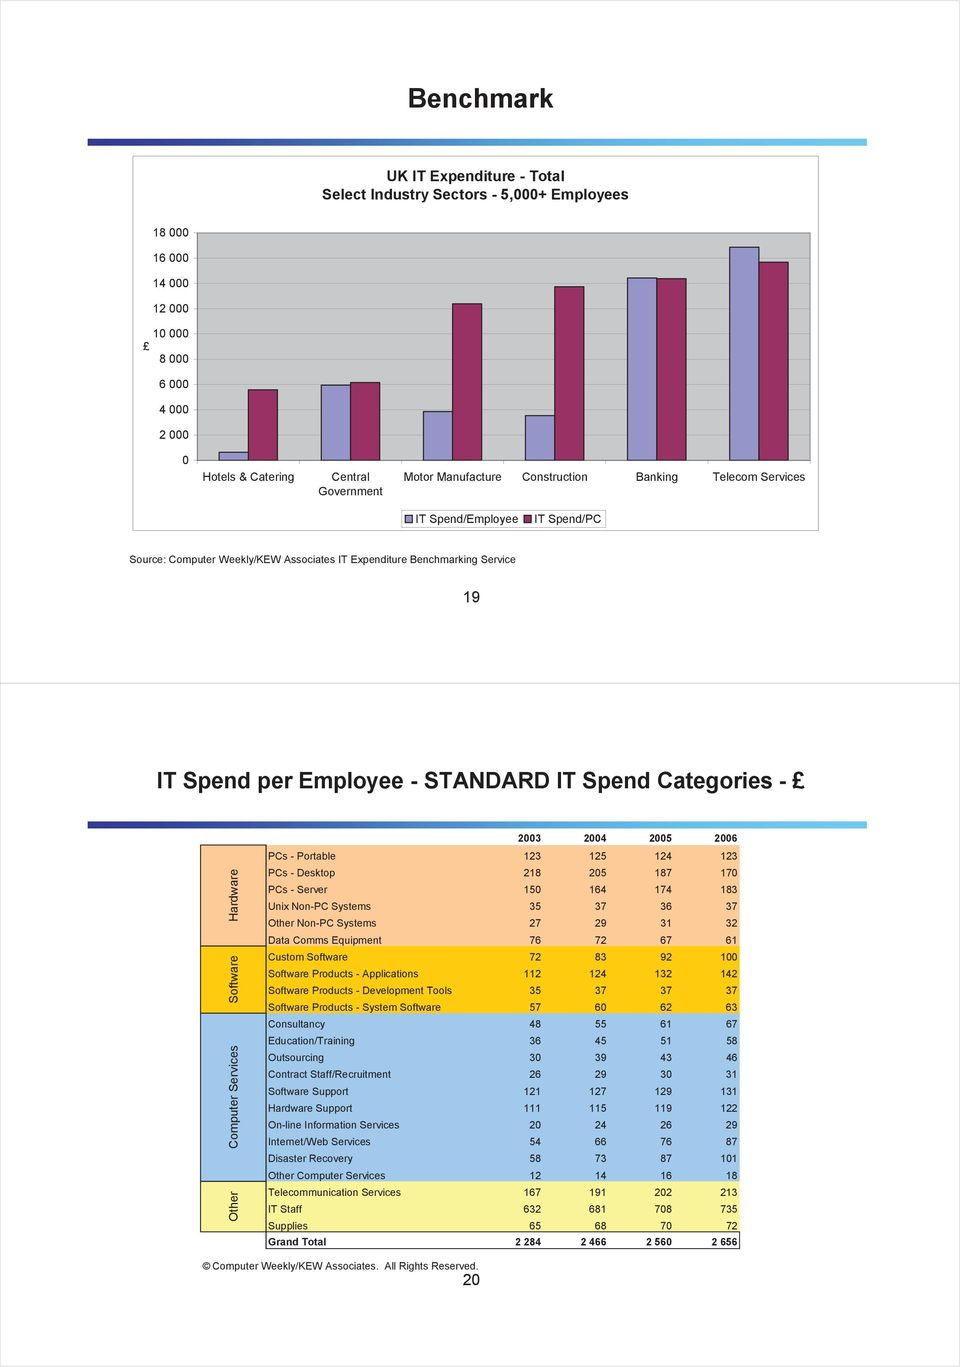 Construction Banking Telecom Services IT Spend/Employee IT Spend/PC Source: Computer Weekly/KEW Associates IT Expenditure Benchmarking Service 19 IT Spend per Employee - STANDARD IT Spend Categories